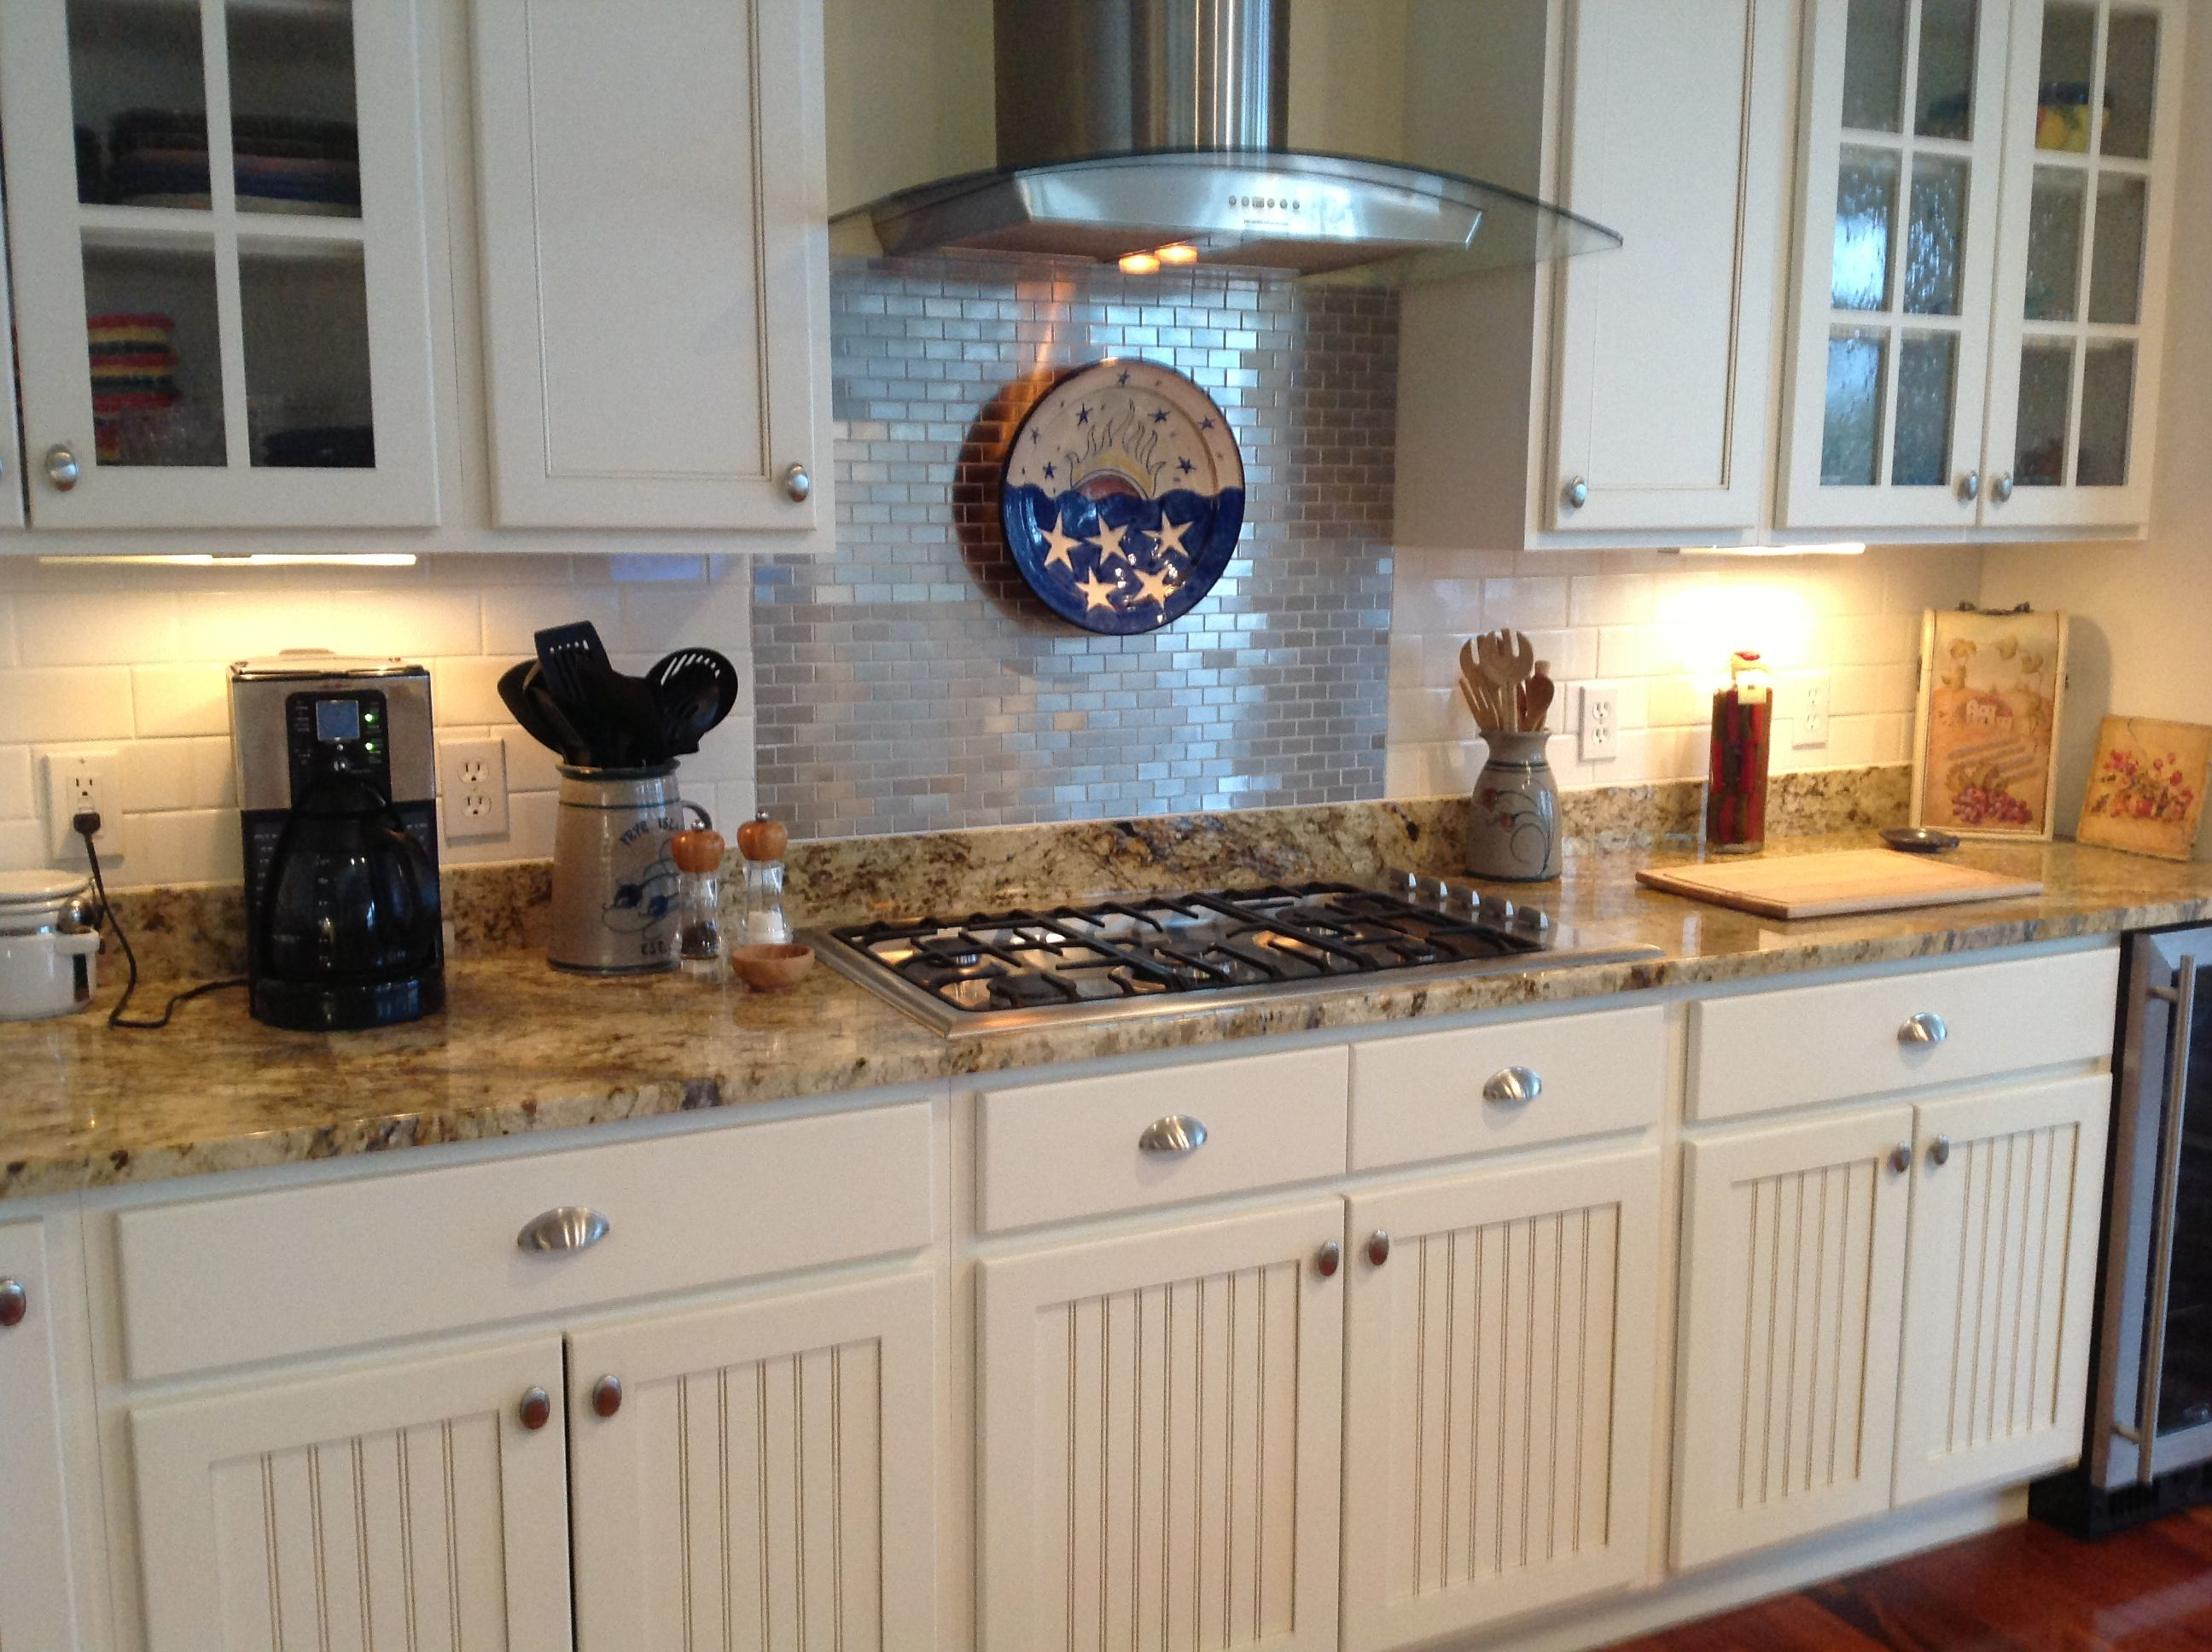 Kitchen design in austin with flat panel cabinets stainless steel - Kitchens Stainless Steel